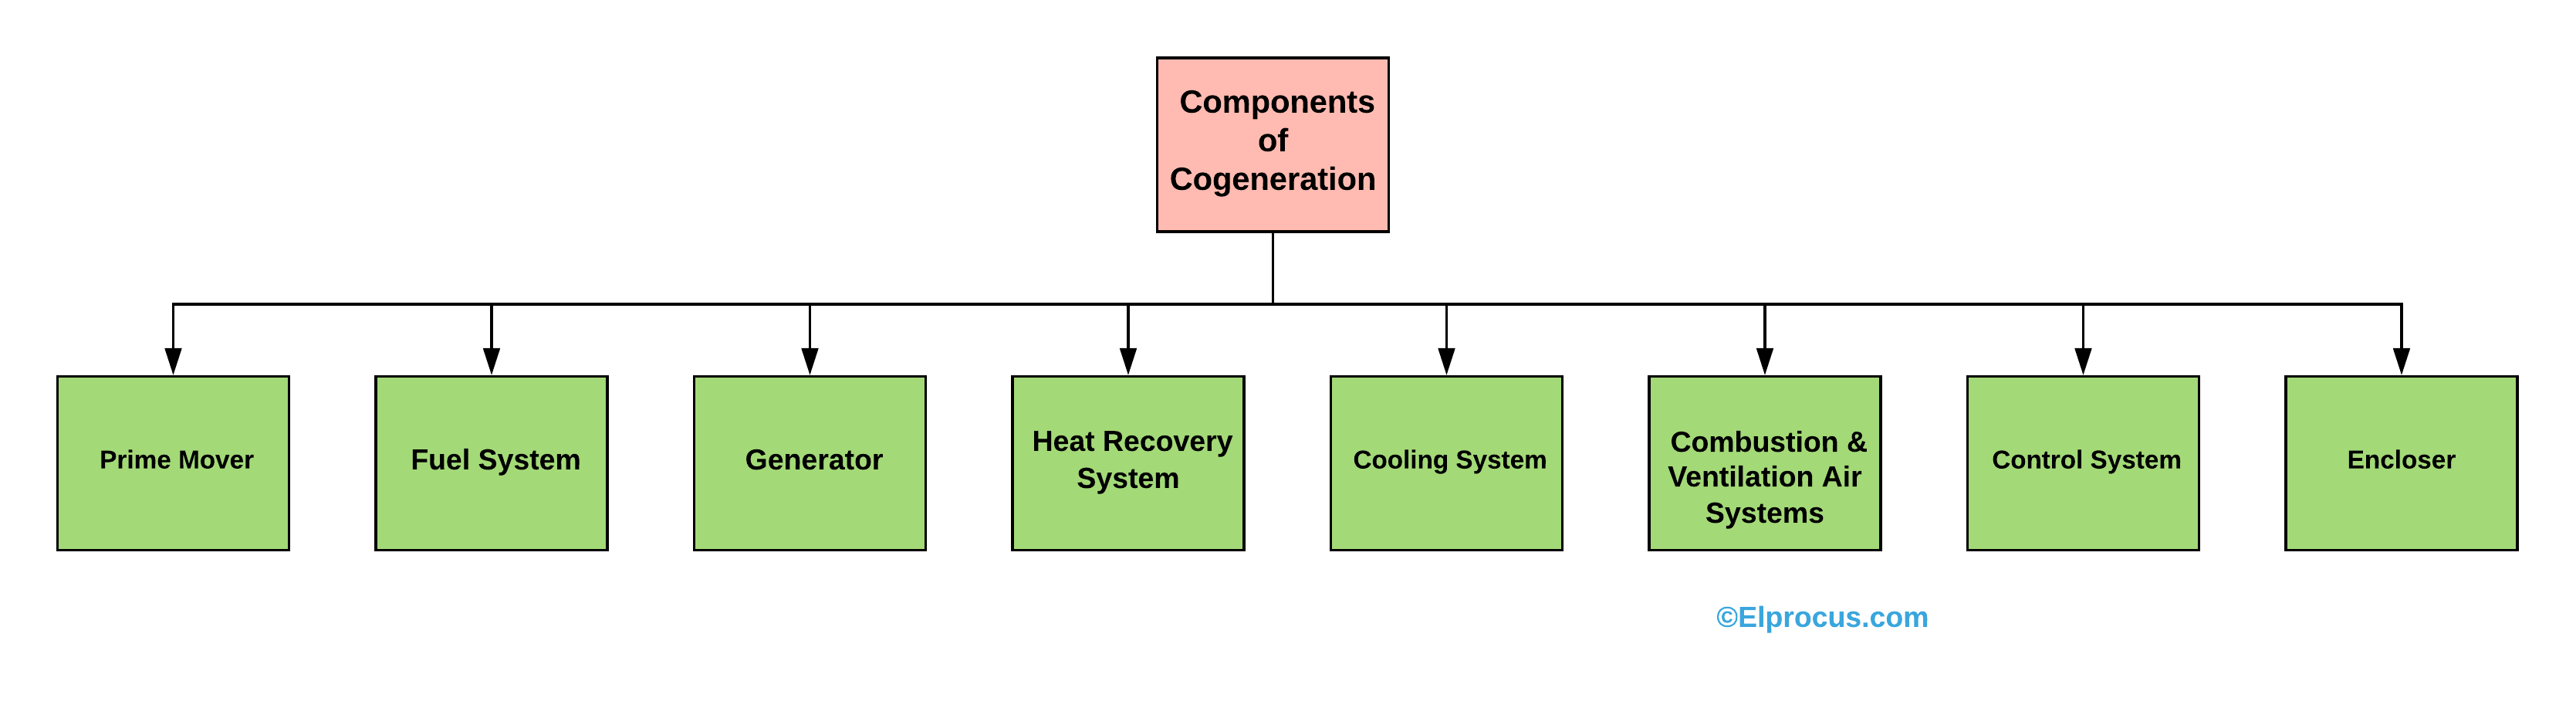 Components of Cogeneration